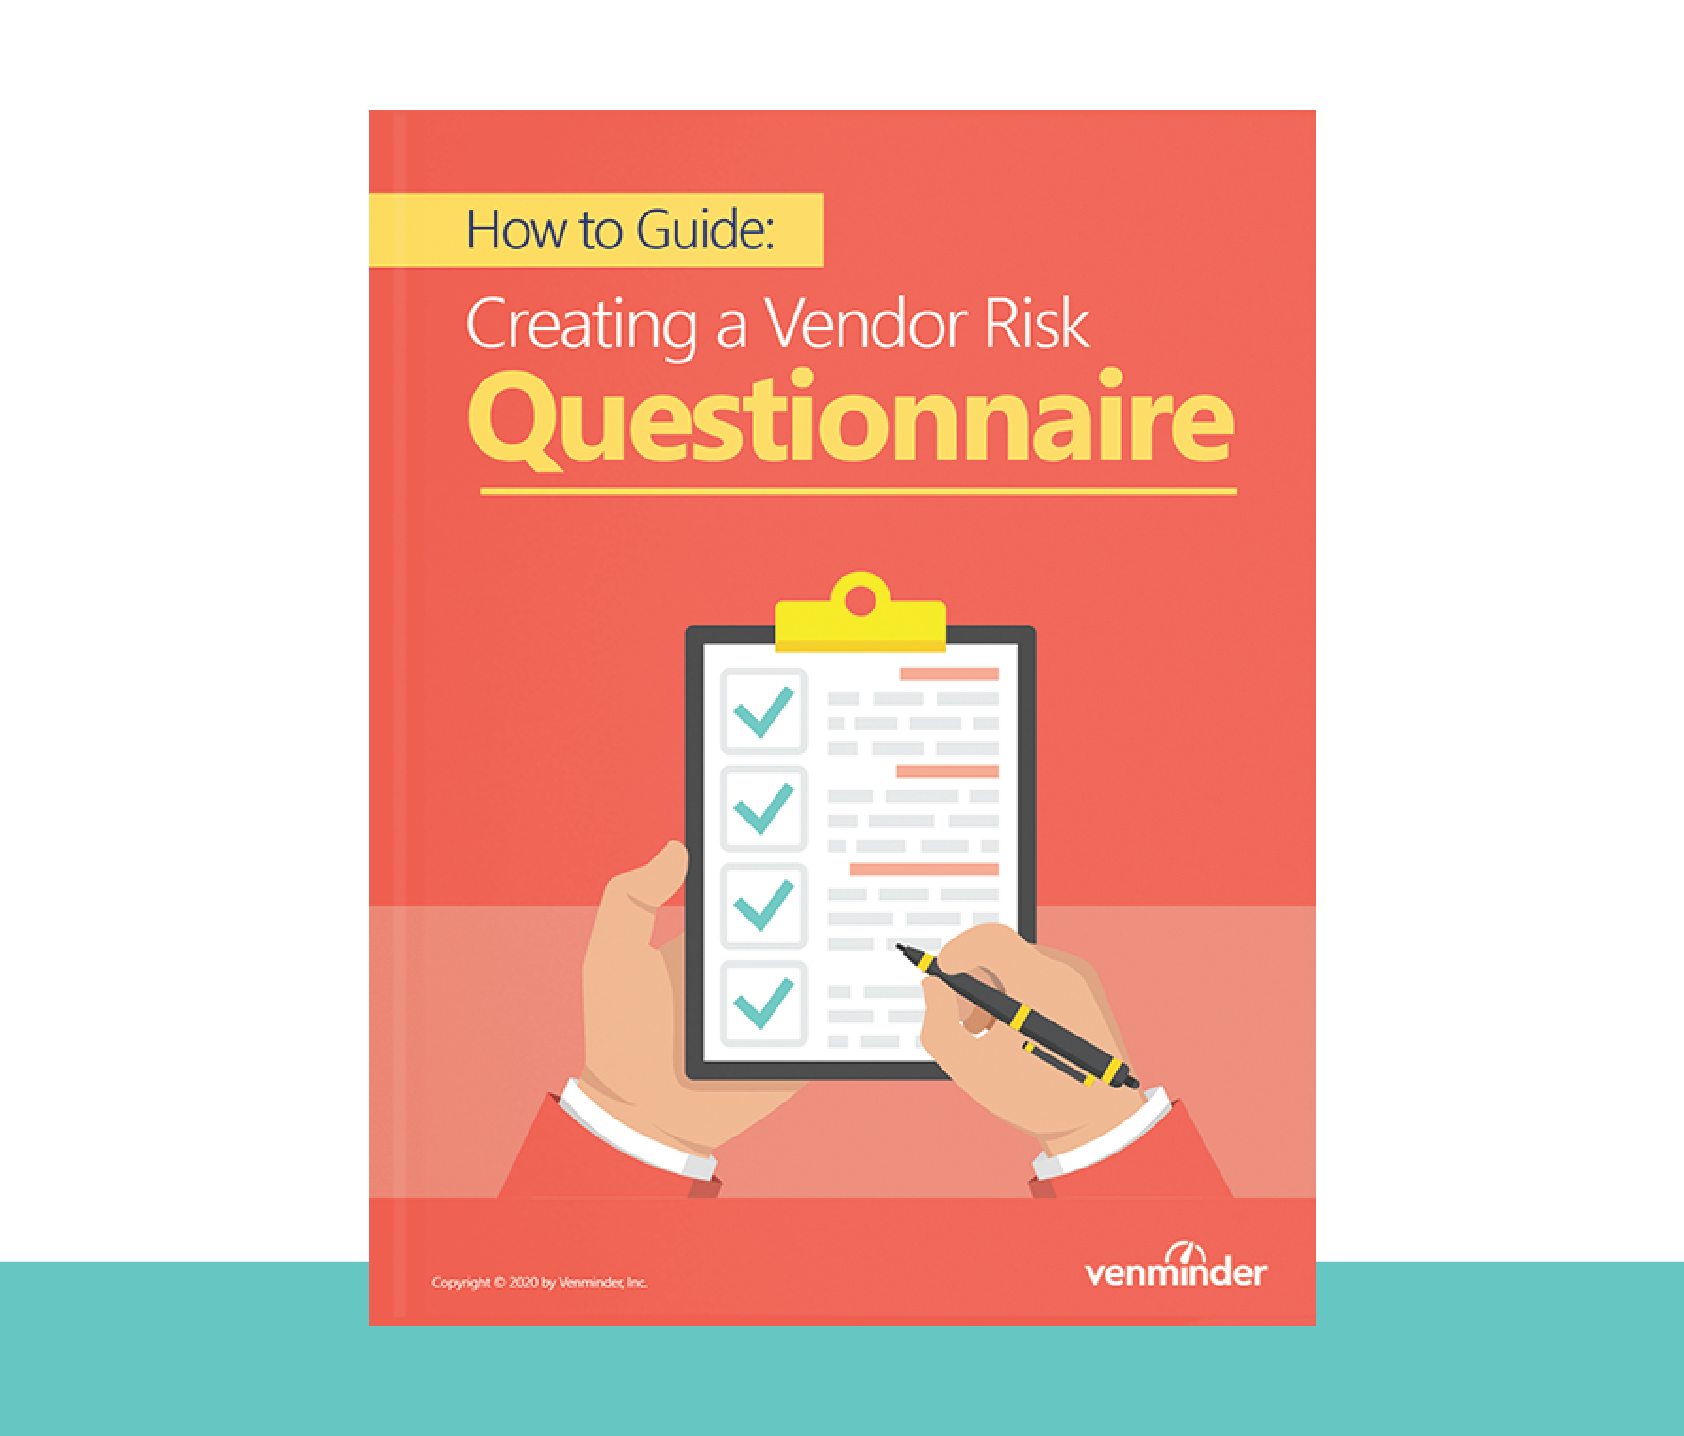 02.14.2020-resources-creating-vendor-risk-questionnaire